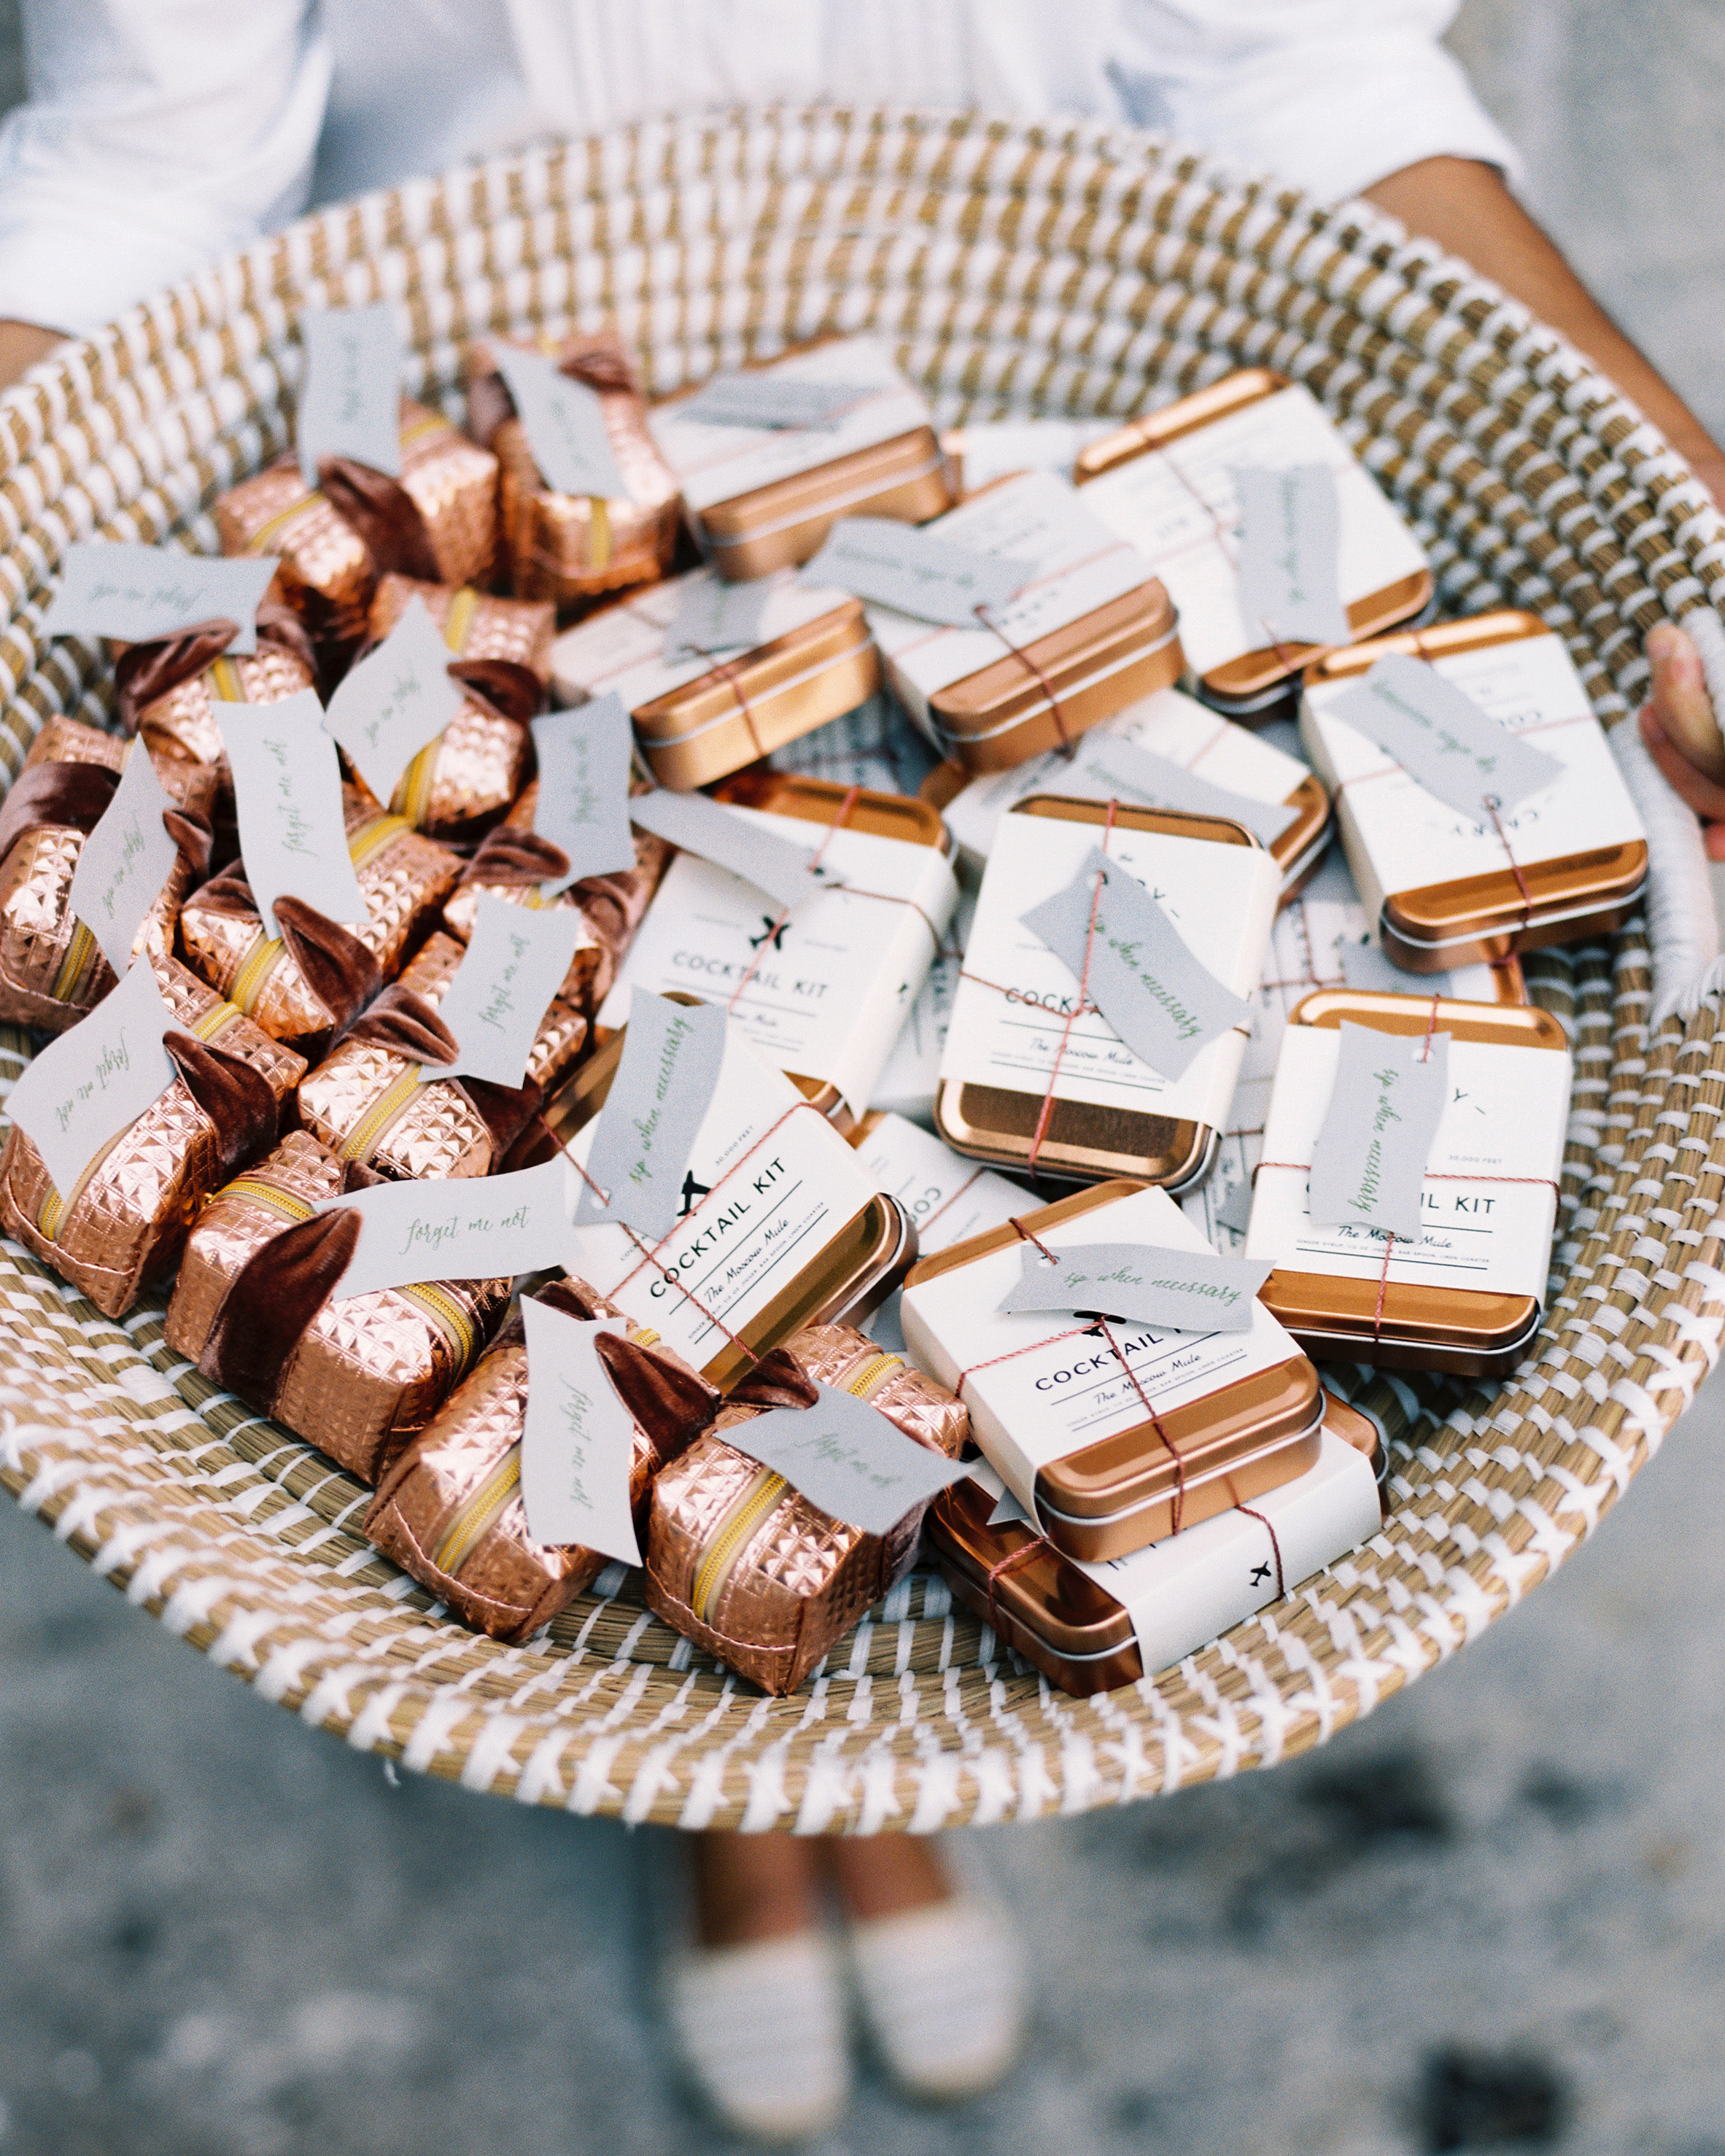 Wedding Party Favor Ideas: 50 Creative Wedding Favors That Will Delight Your Guests